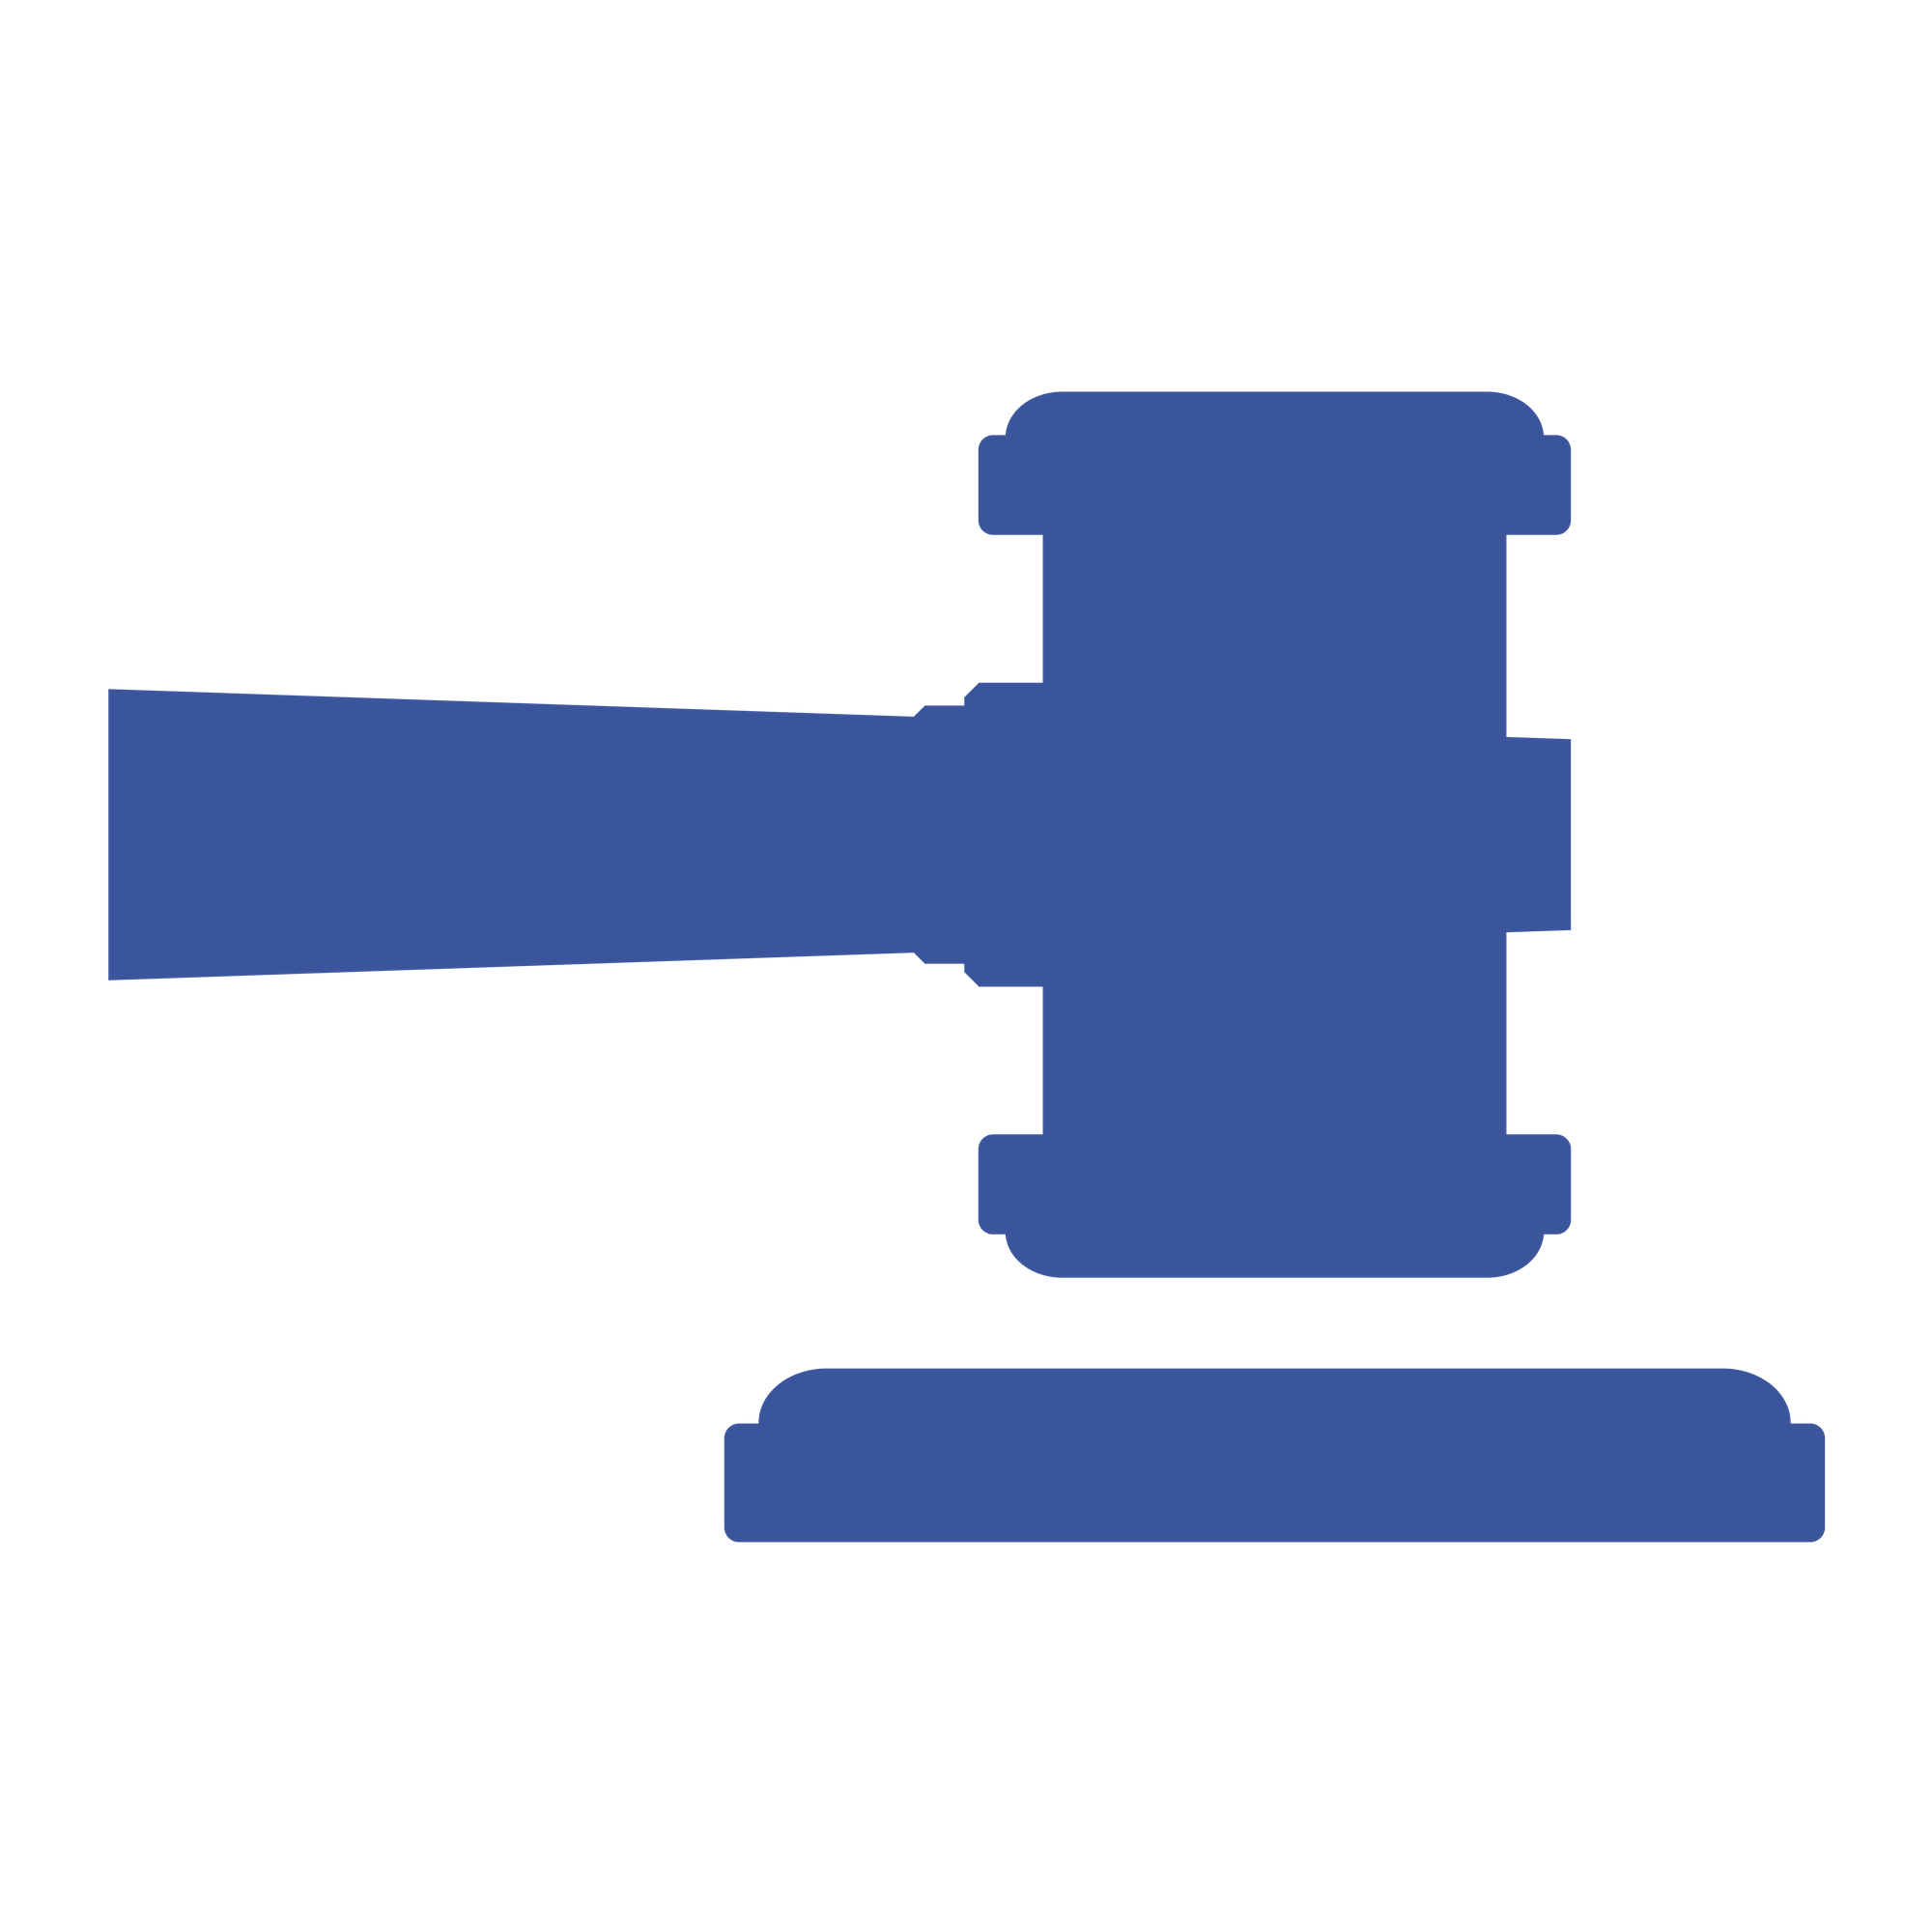 conviction_persecution_icon.png